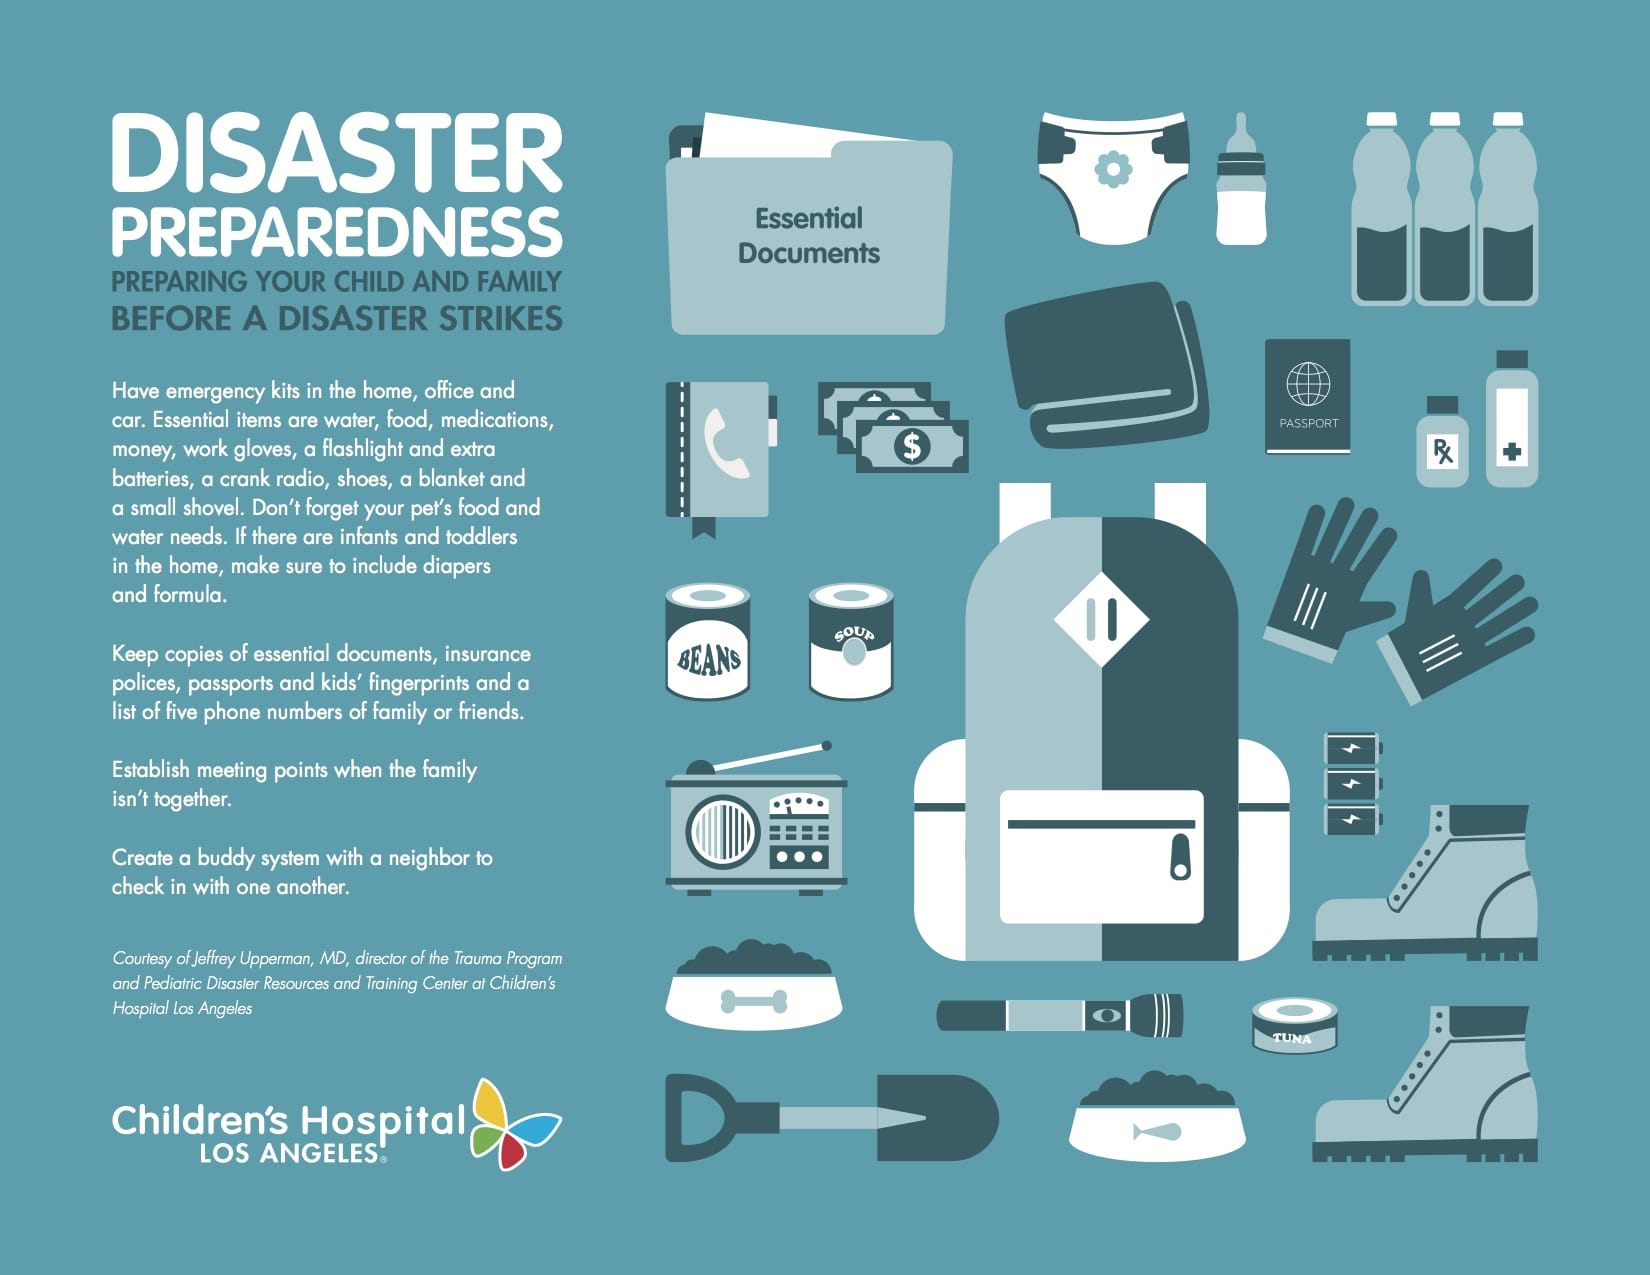 Preparing Your Family for a Disaster